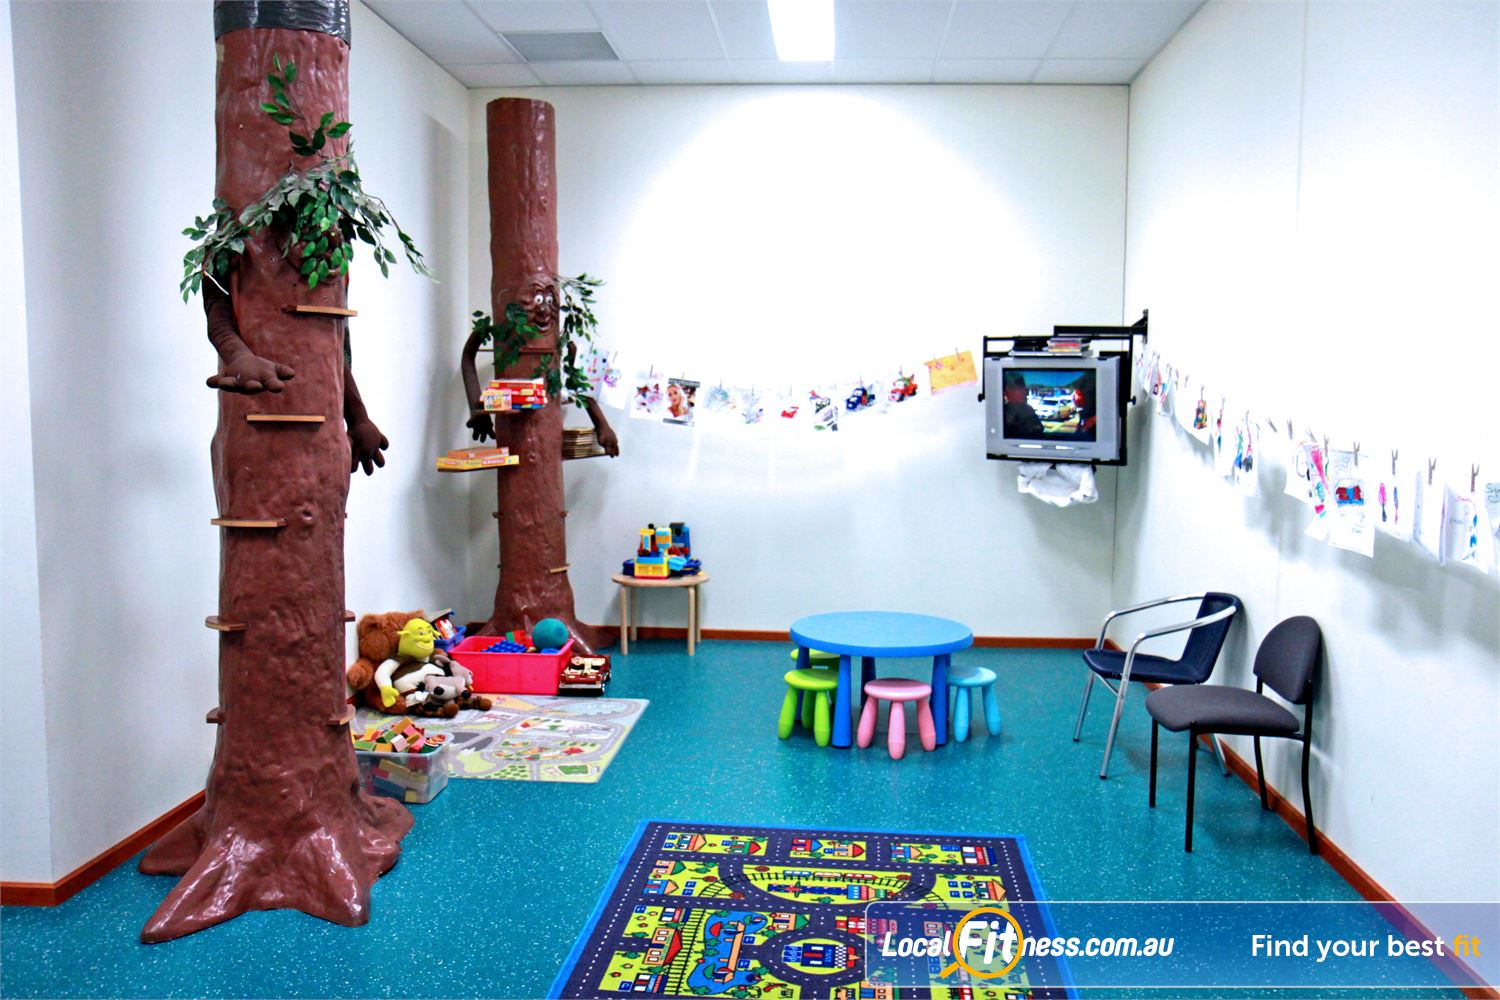 Fernwood Fitness Near Newtown Fernwood Waurn Ponds child-care is conveniently located on-site.